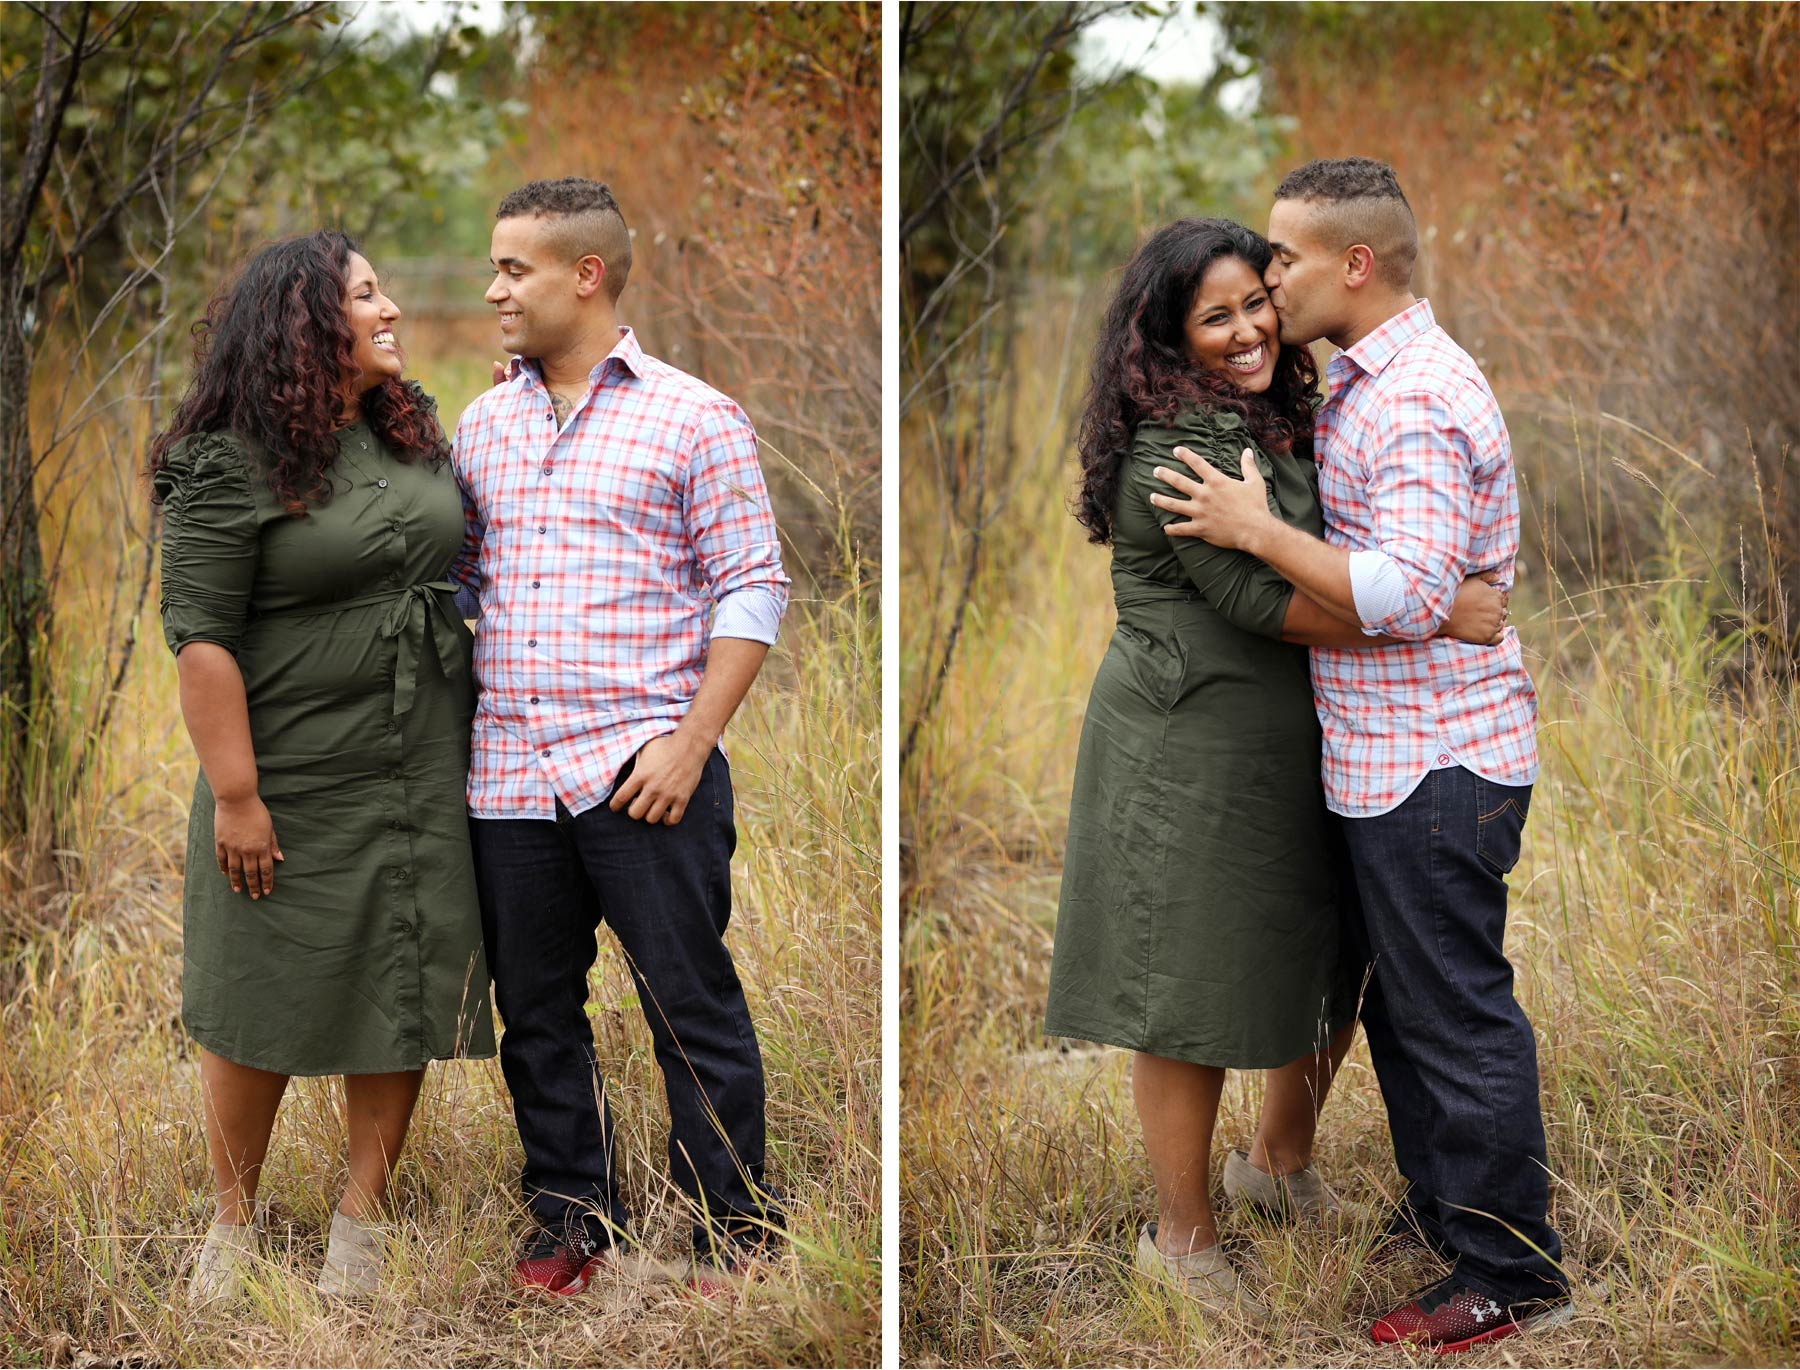 04-Vick-Photography-Get-Aquainted-Session-Engagement-Park-Fall-Autumn-Leena-and-Michael.jpg